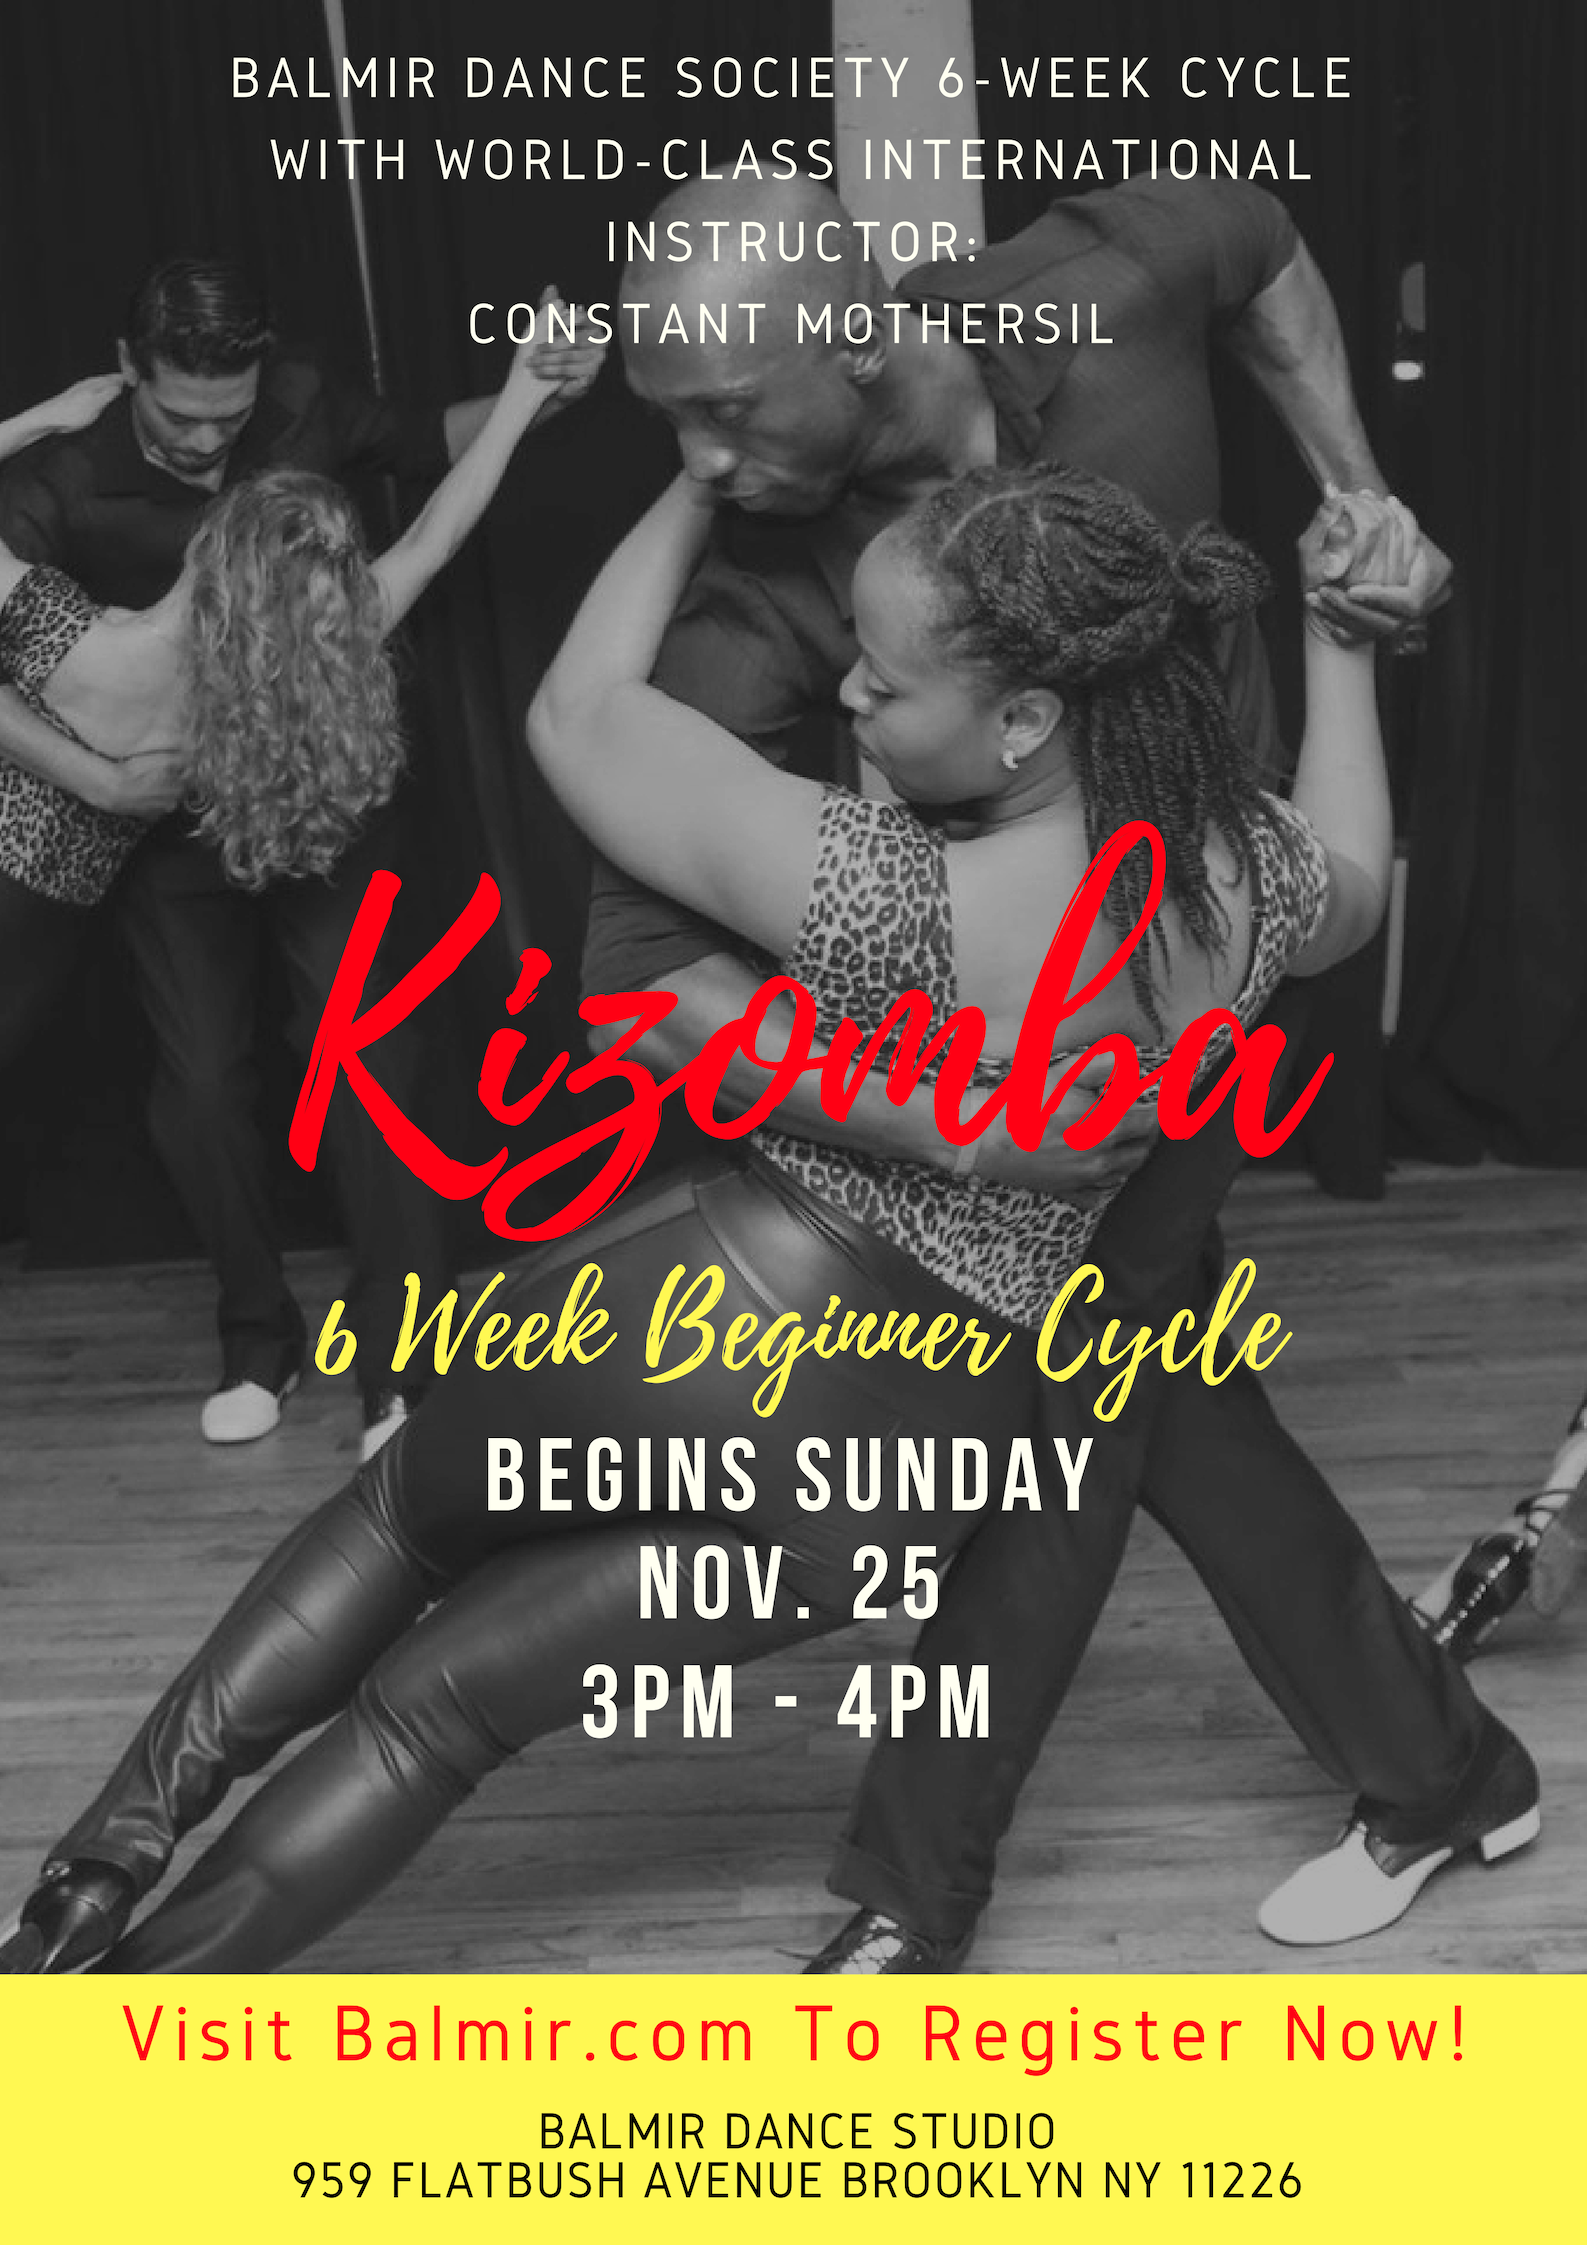 Kizomba 6 Week Cycle Brooklyn Dance Classes Balmir.png